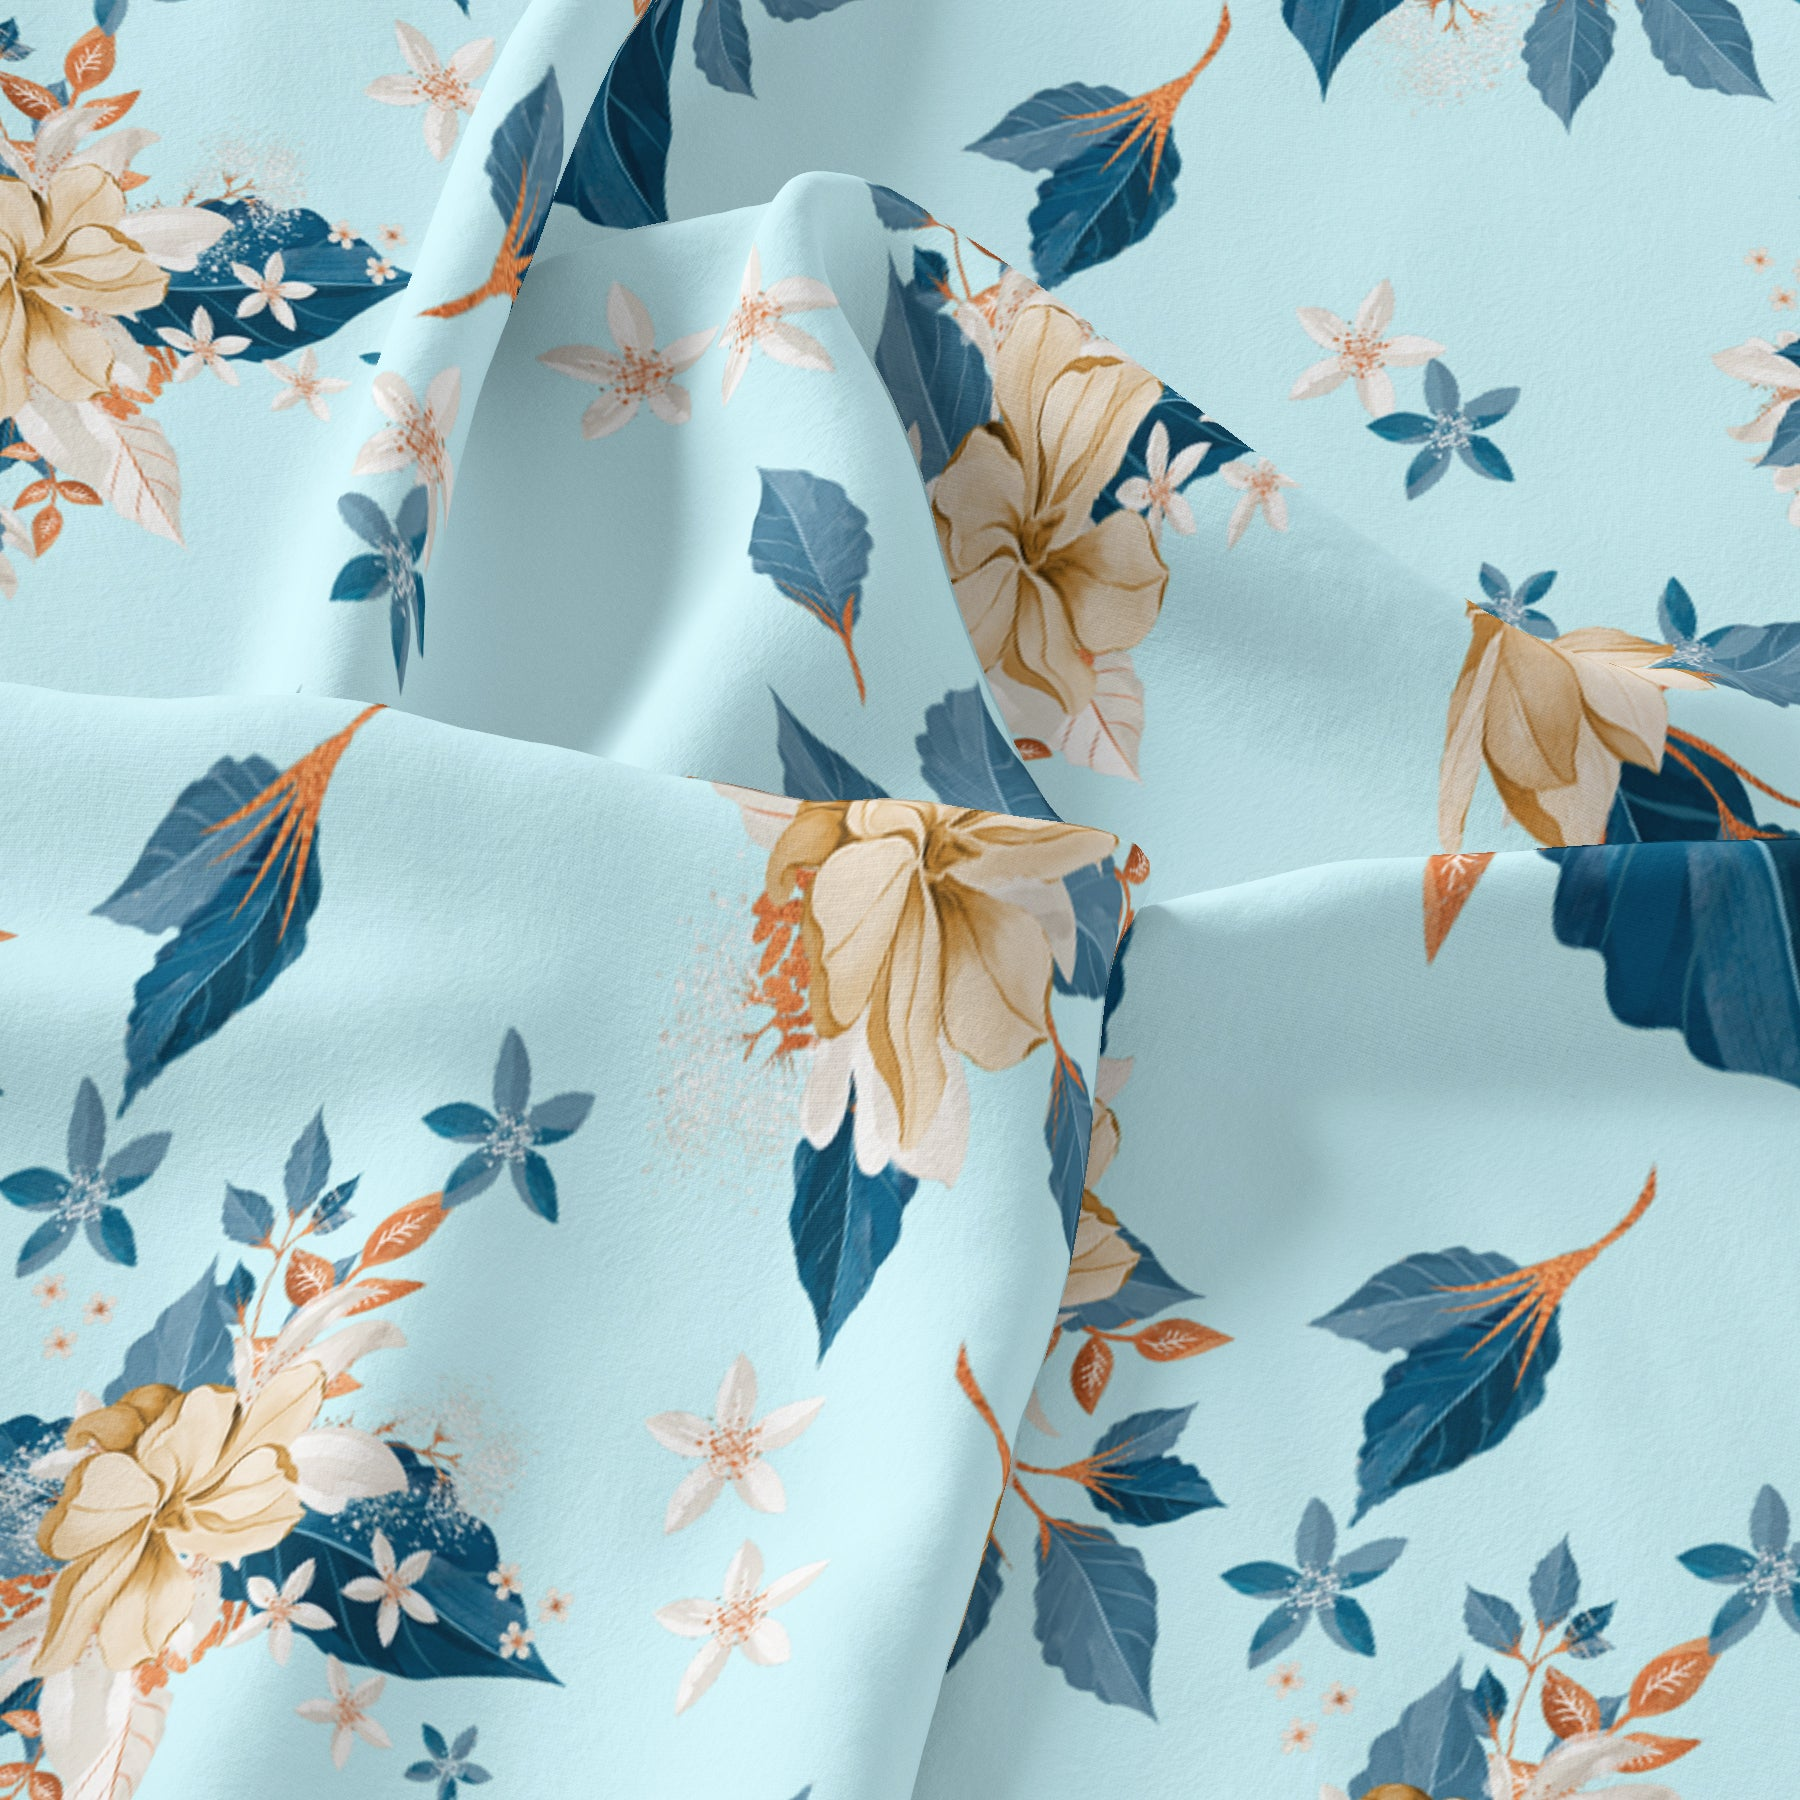 Flower On Ocean Blue Digital Printed Fabric - Japan Satin